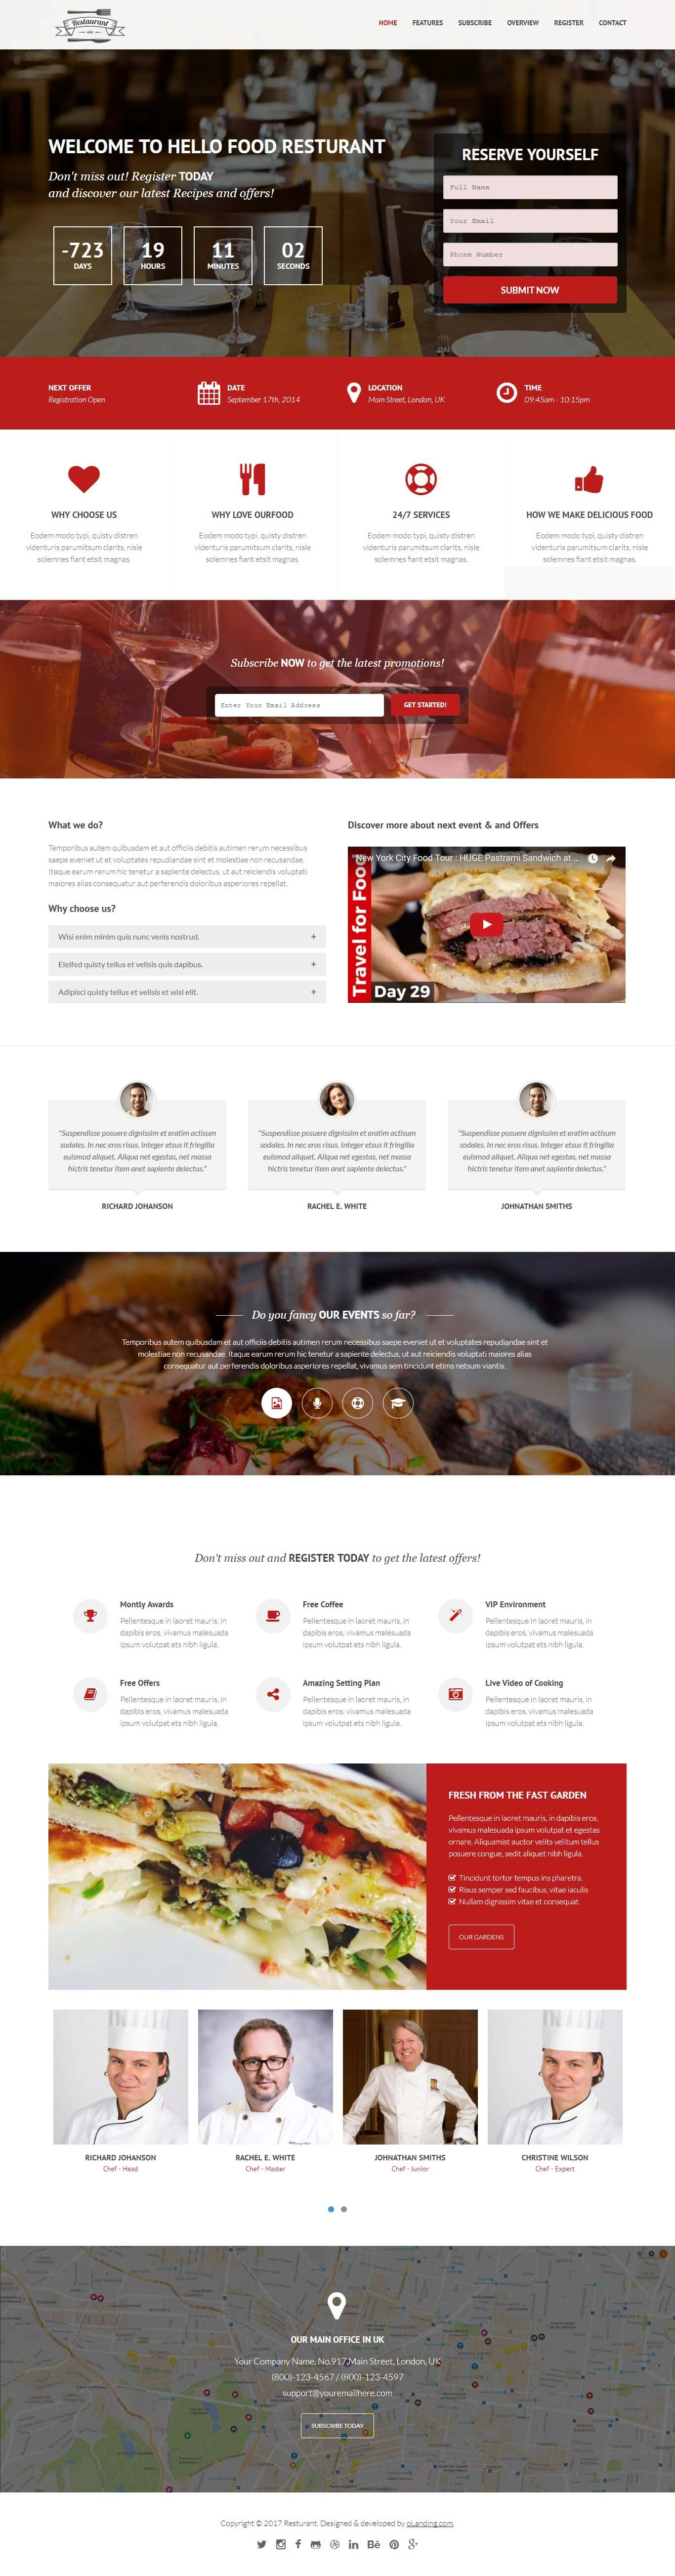 Responsive Restaurant And Cafe Landing